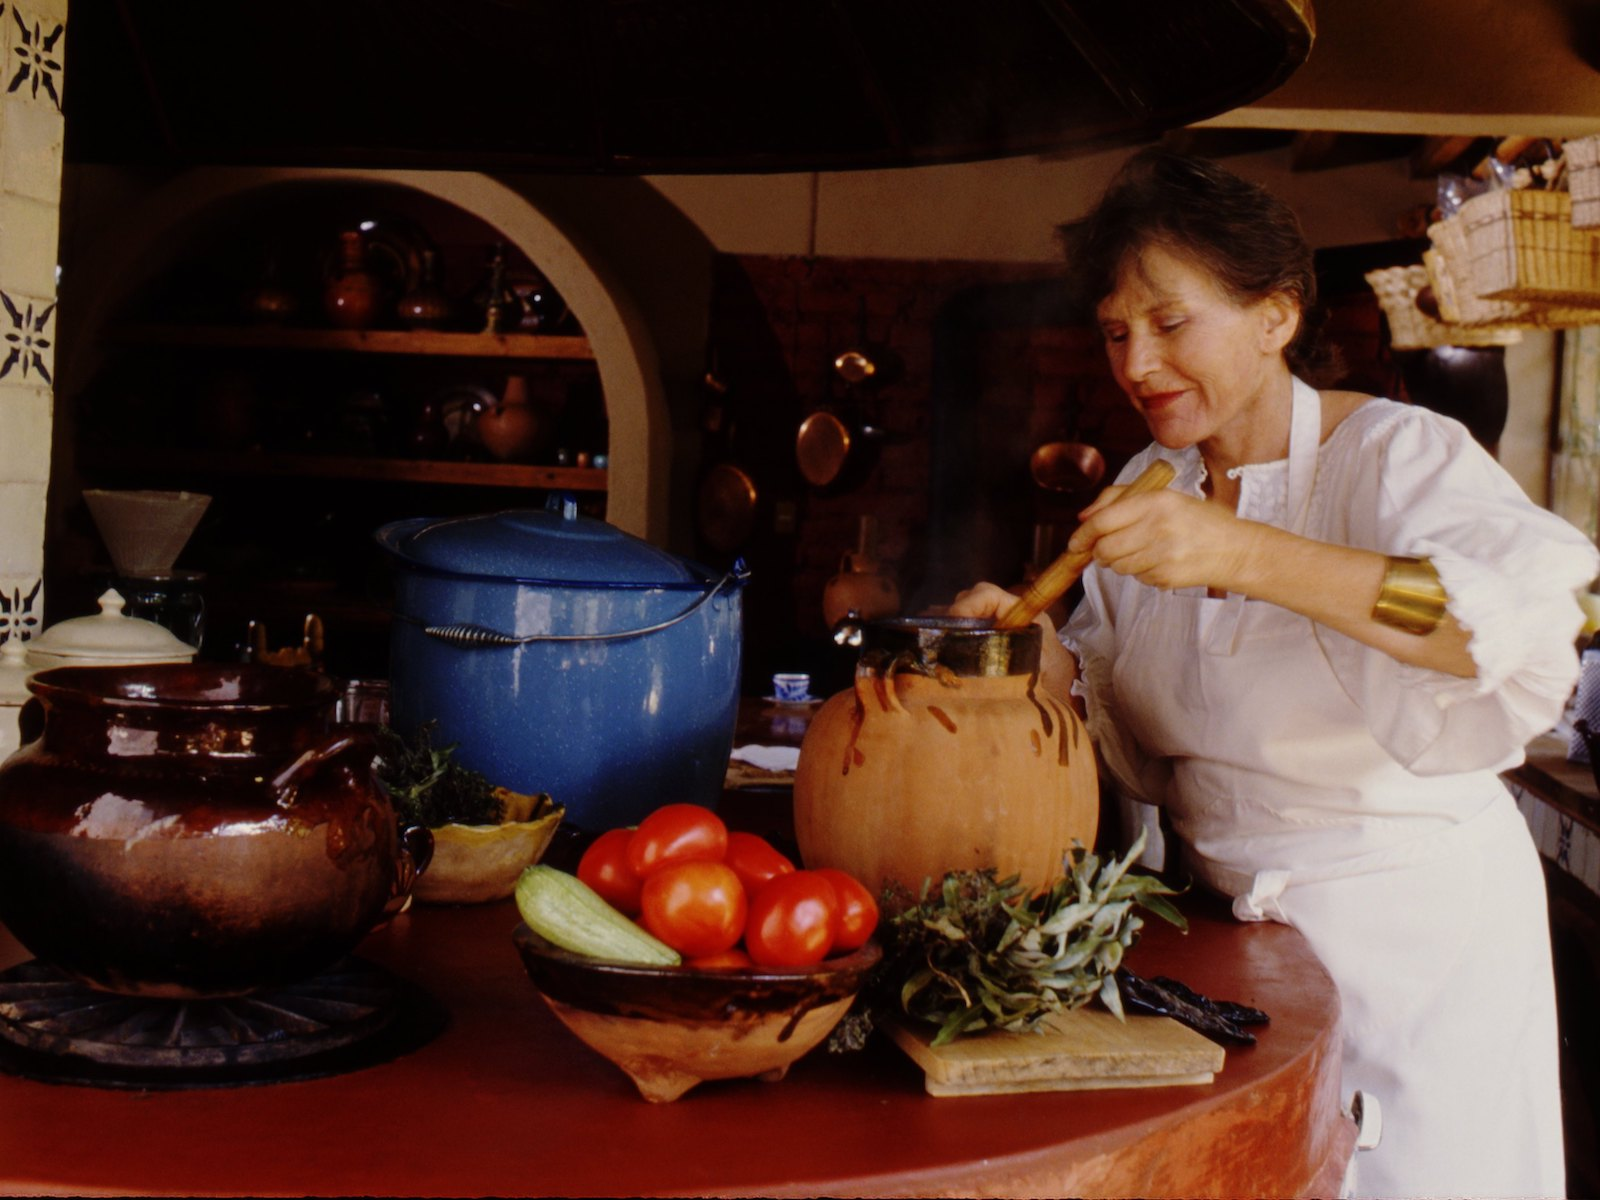 Culinary Legend Diana Kennedy Is Getting a Documentary Thanks to Kickstarter